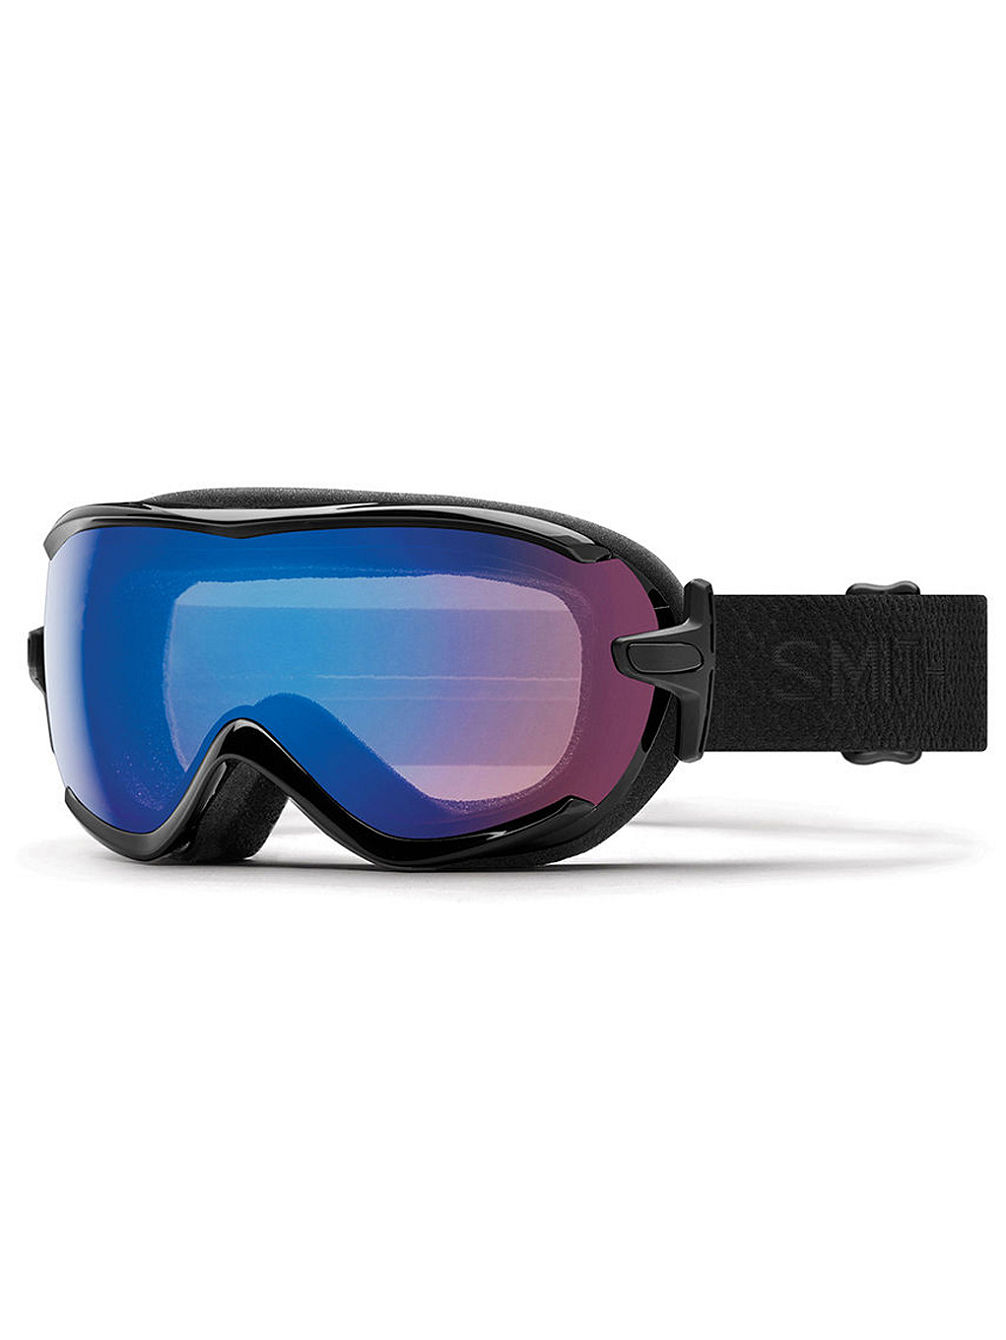 Virtue Sph Black Mosaic Goggle